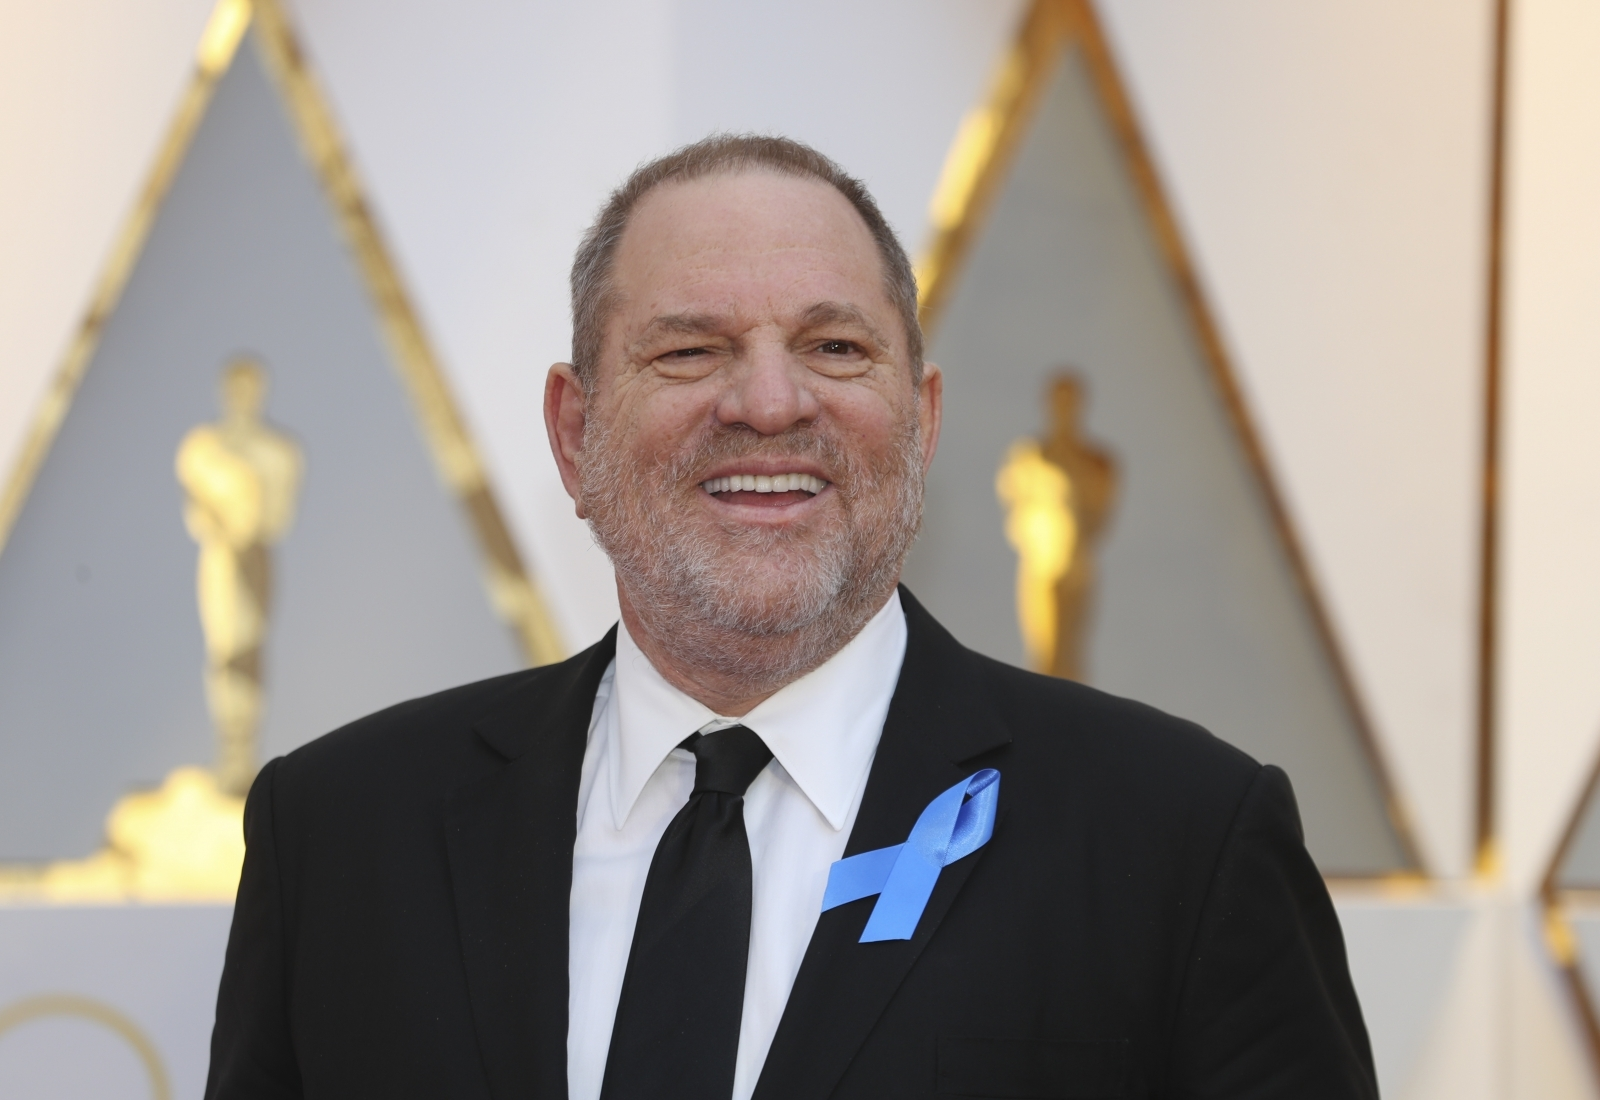 Harvey Weinstein officially begins leave of absence; board vows 'thorough' investigation